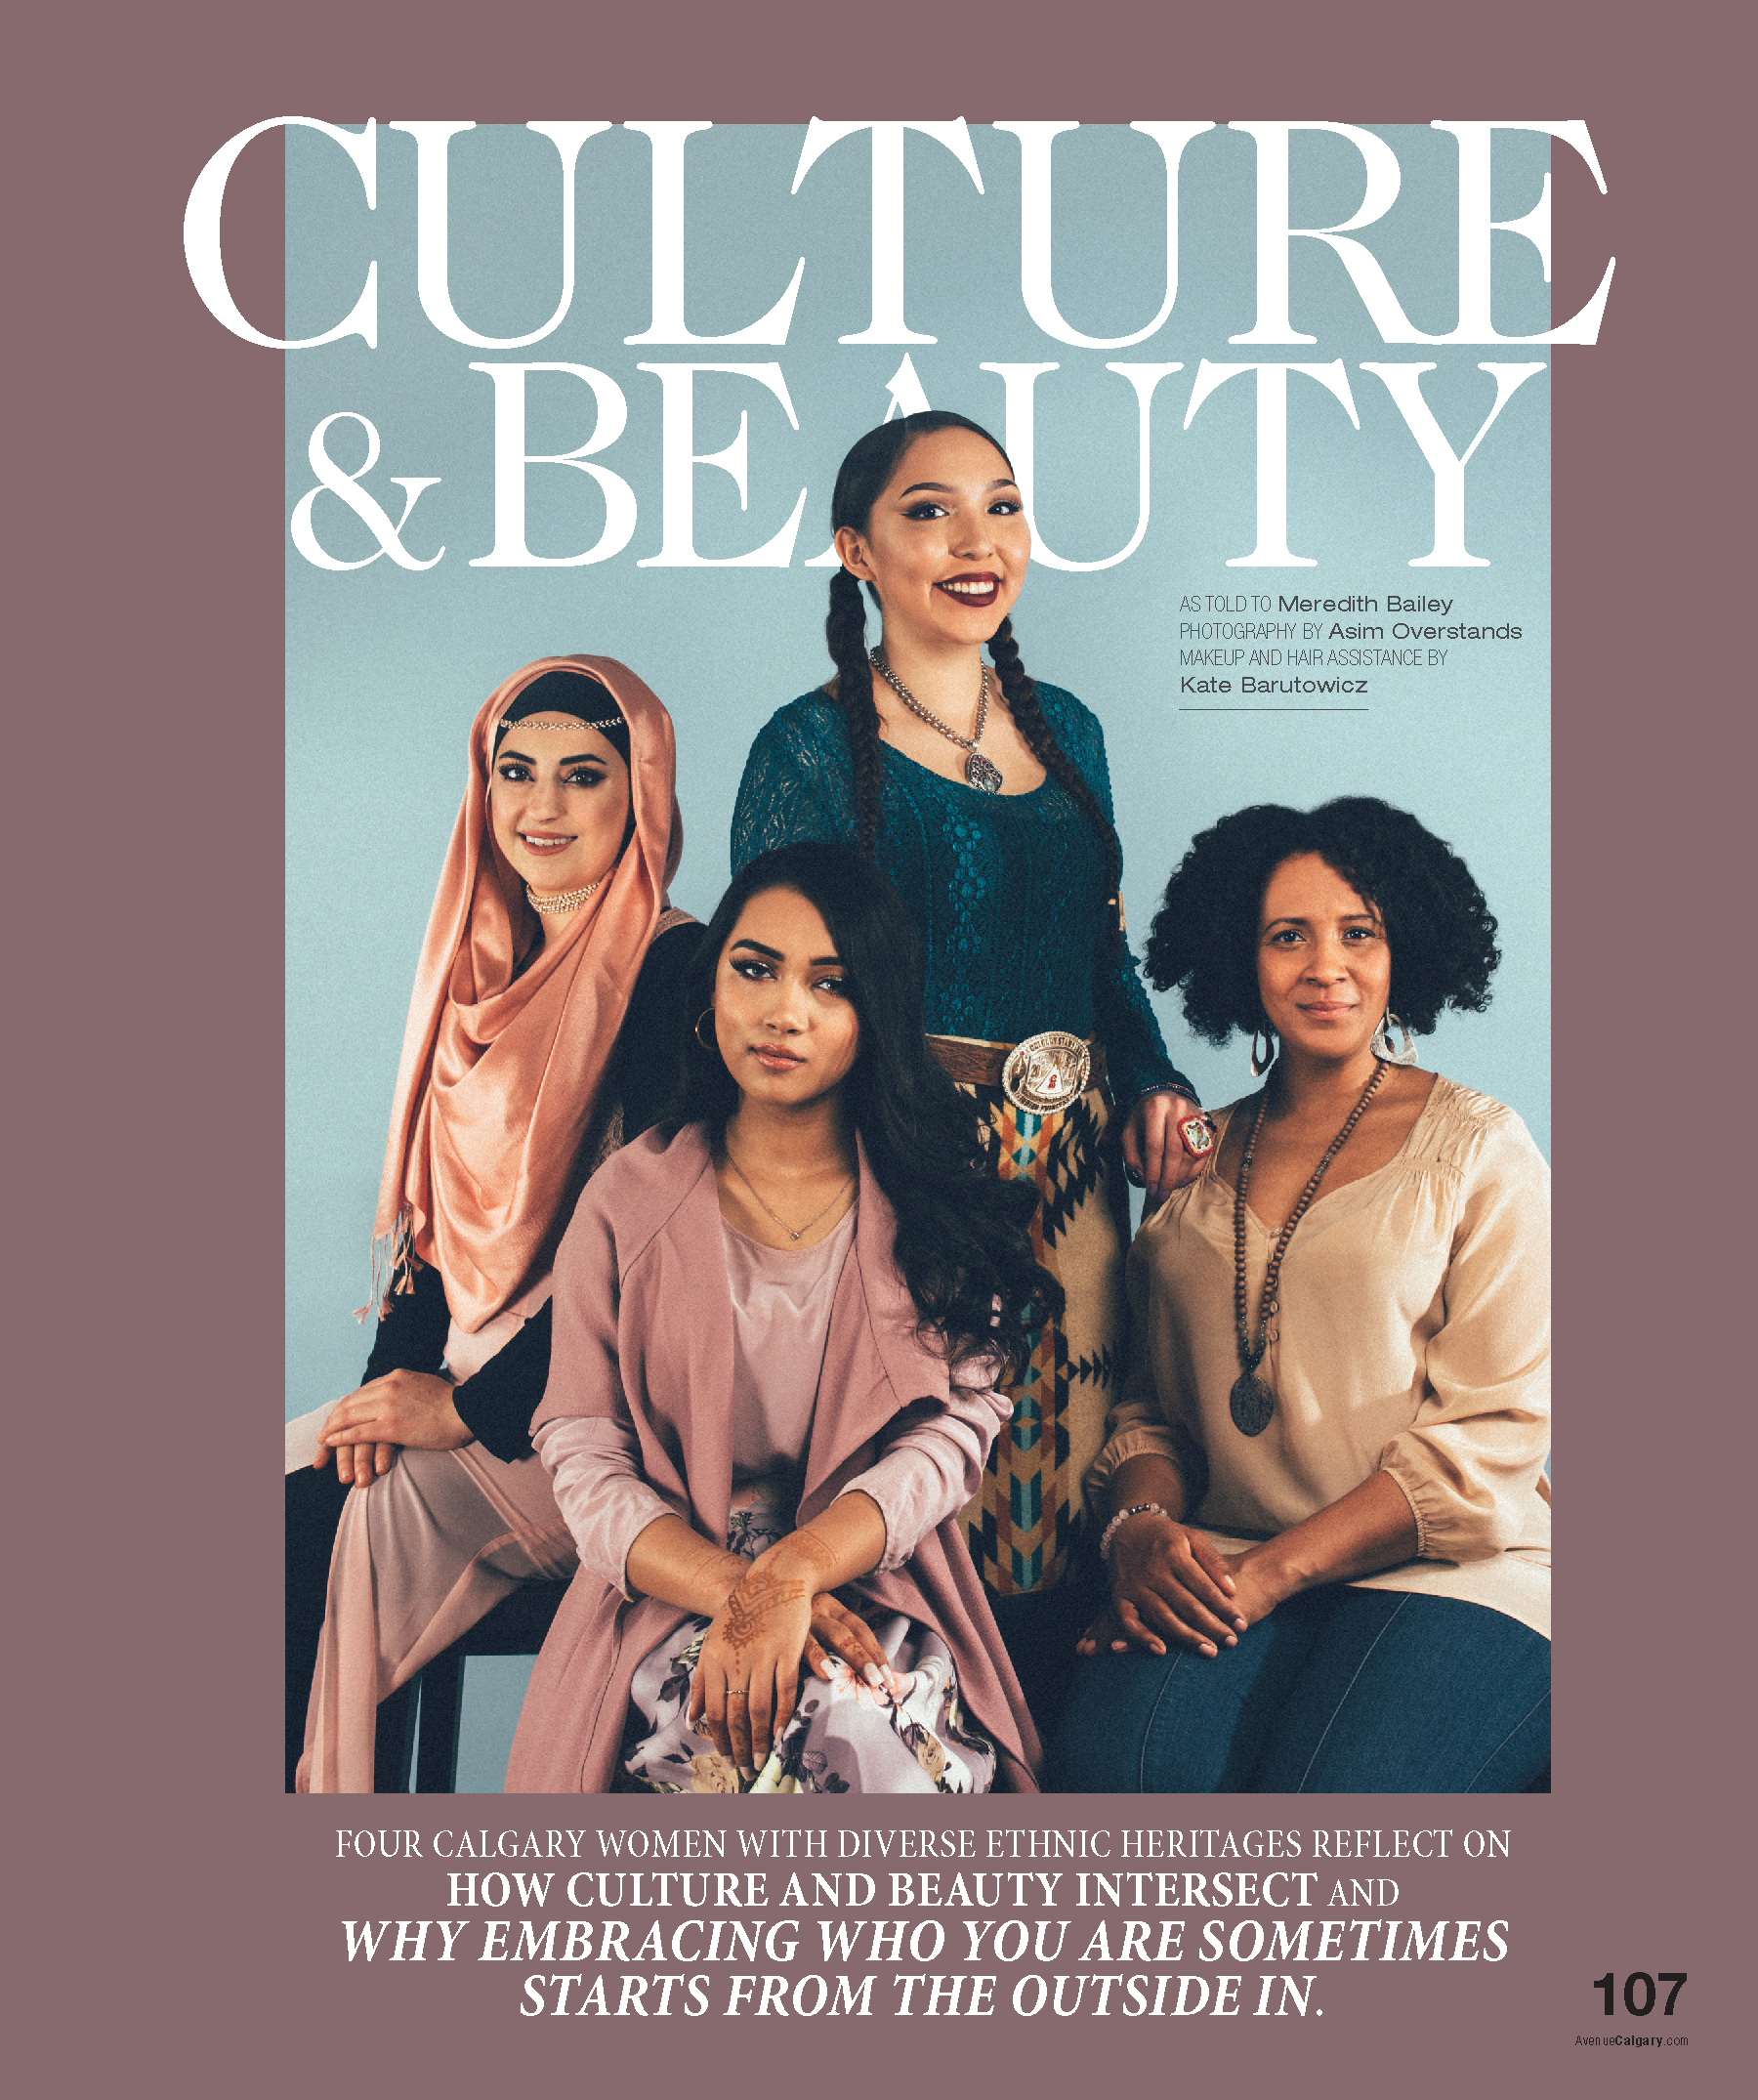 Avenue_CulturalBeauty_Page_1.png